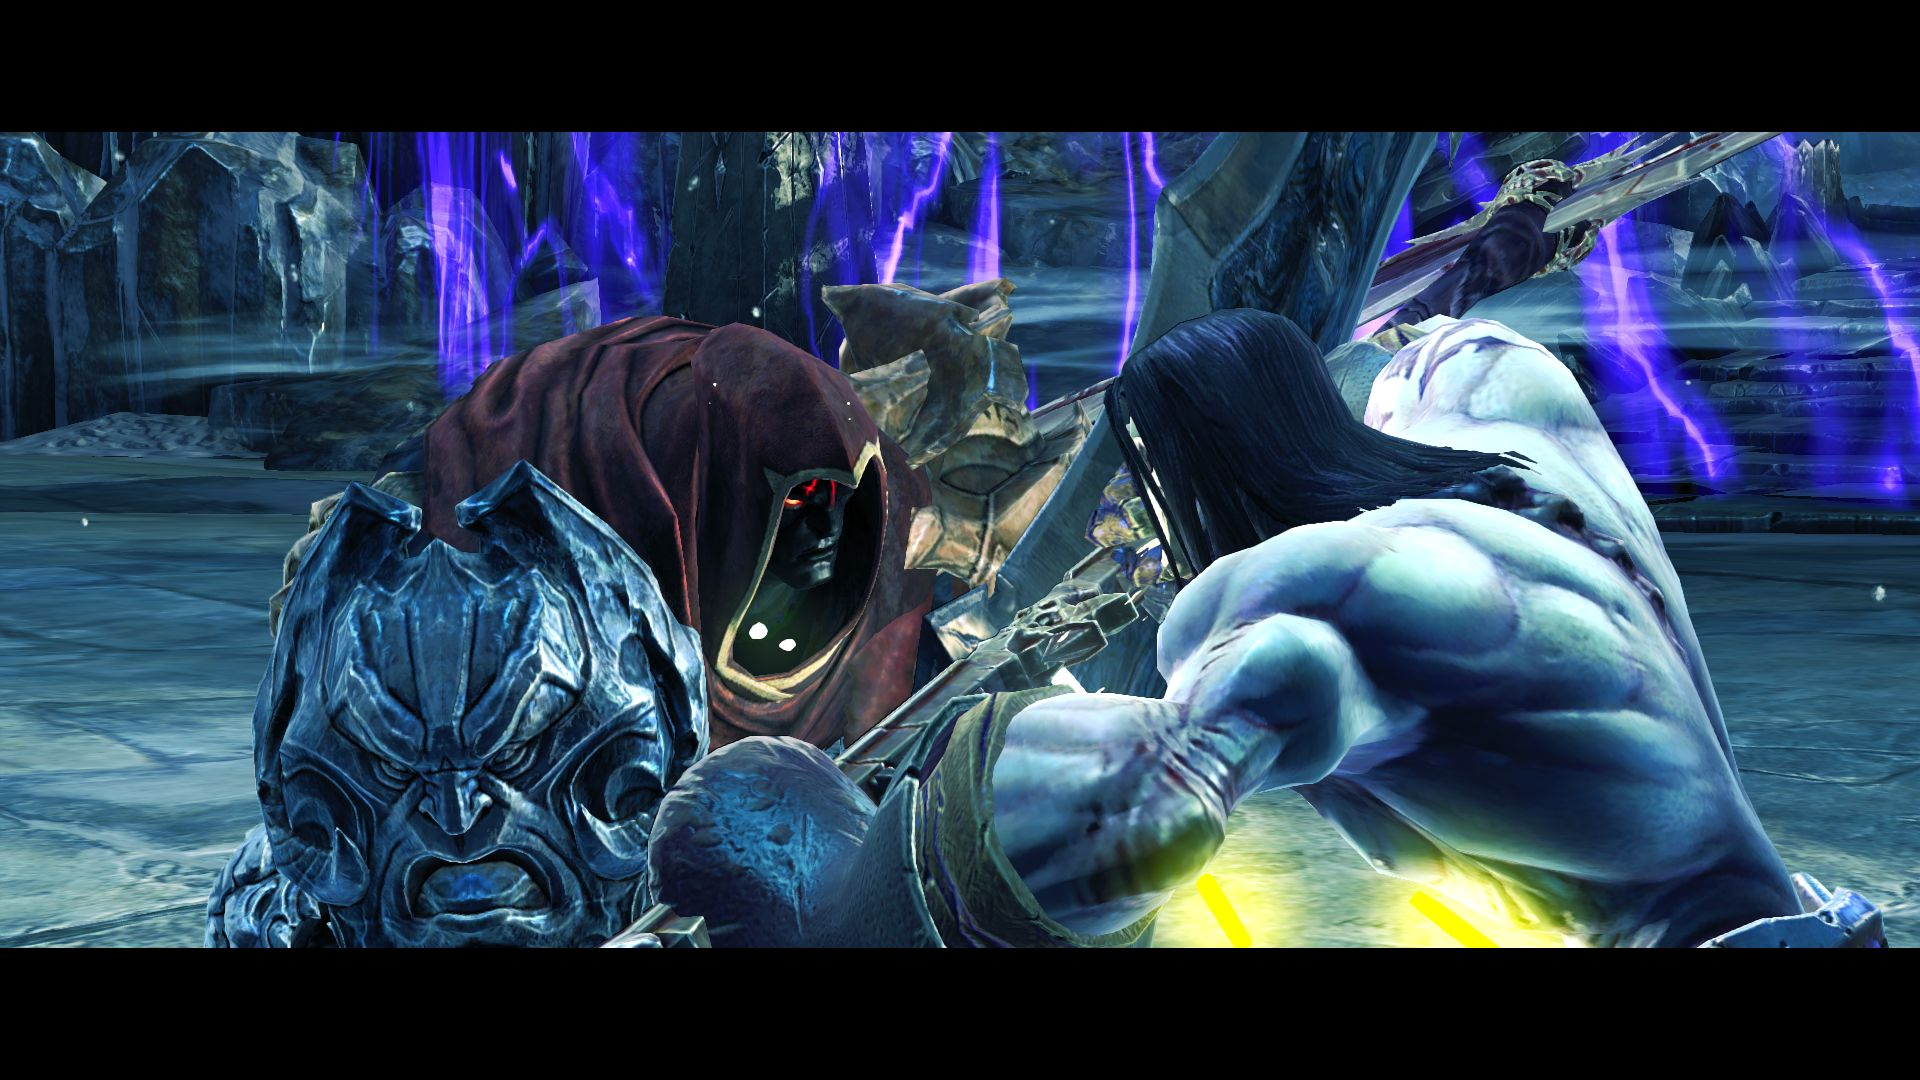 Benchmarkcheck: Darksiders II - Notebookcheck com Tests